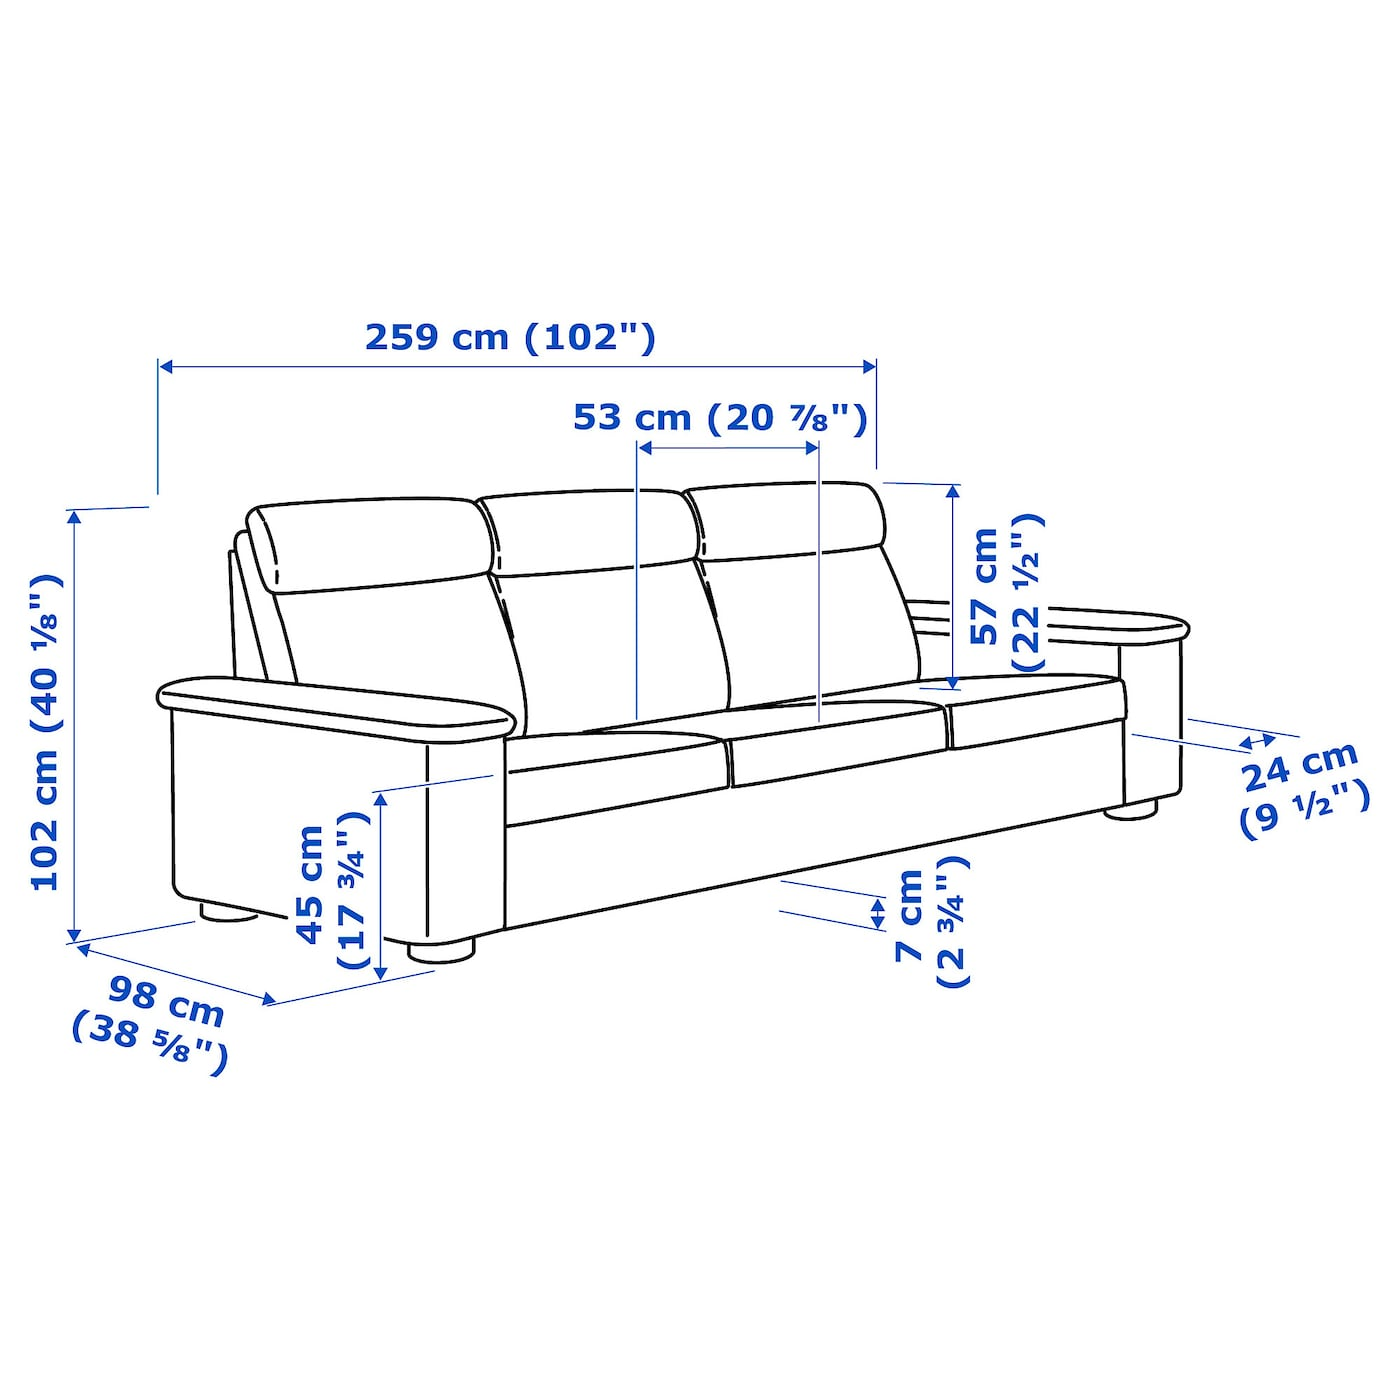 IKEA LIDHULT 3-seat sofa 10 year guarantee. Read about the terms in the guarantee brochure.